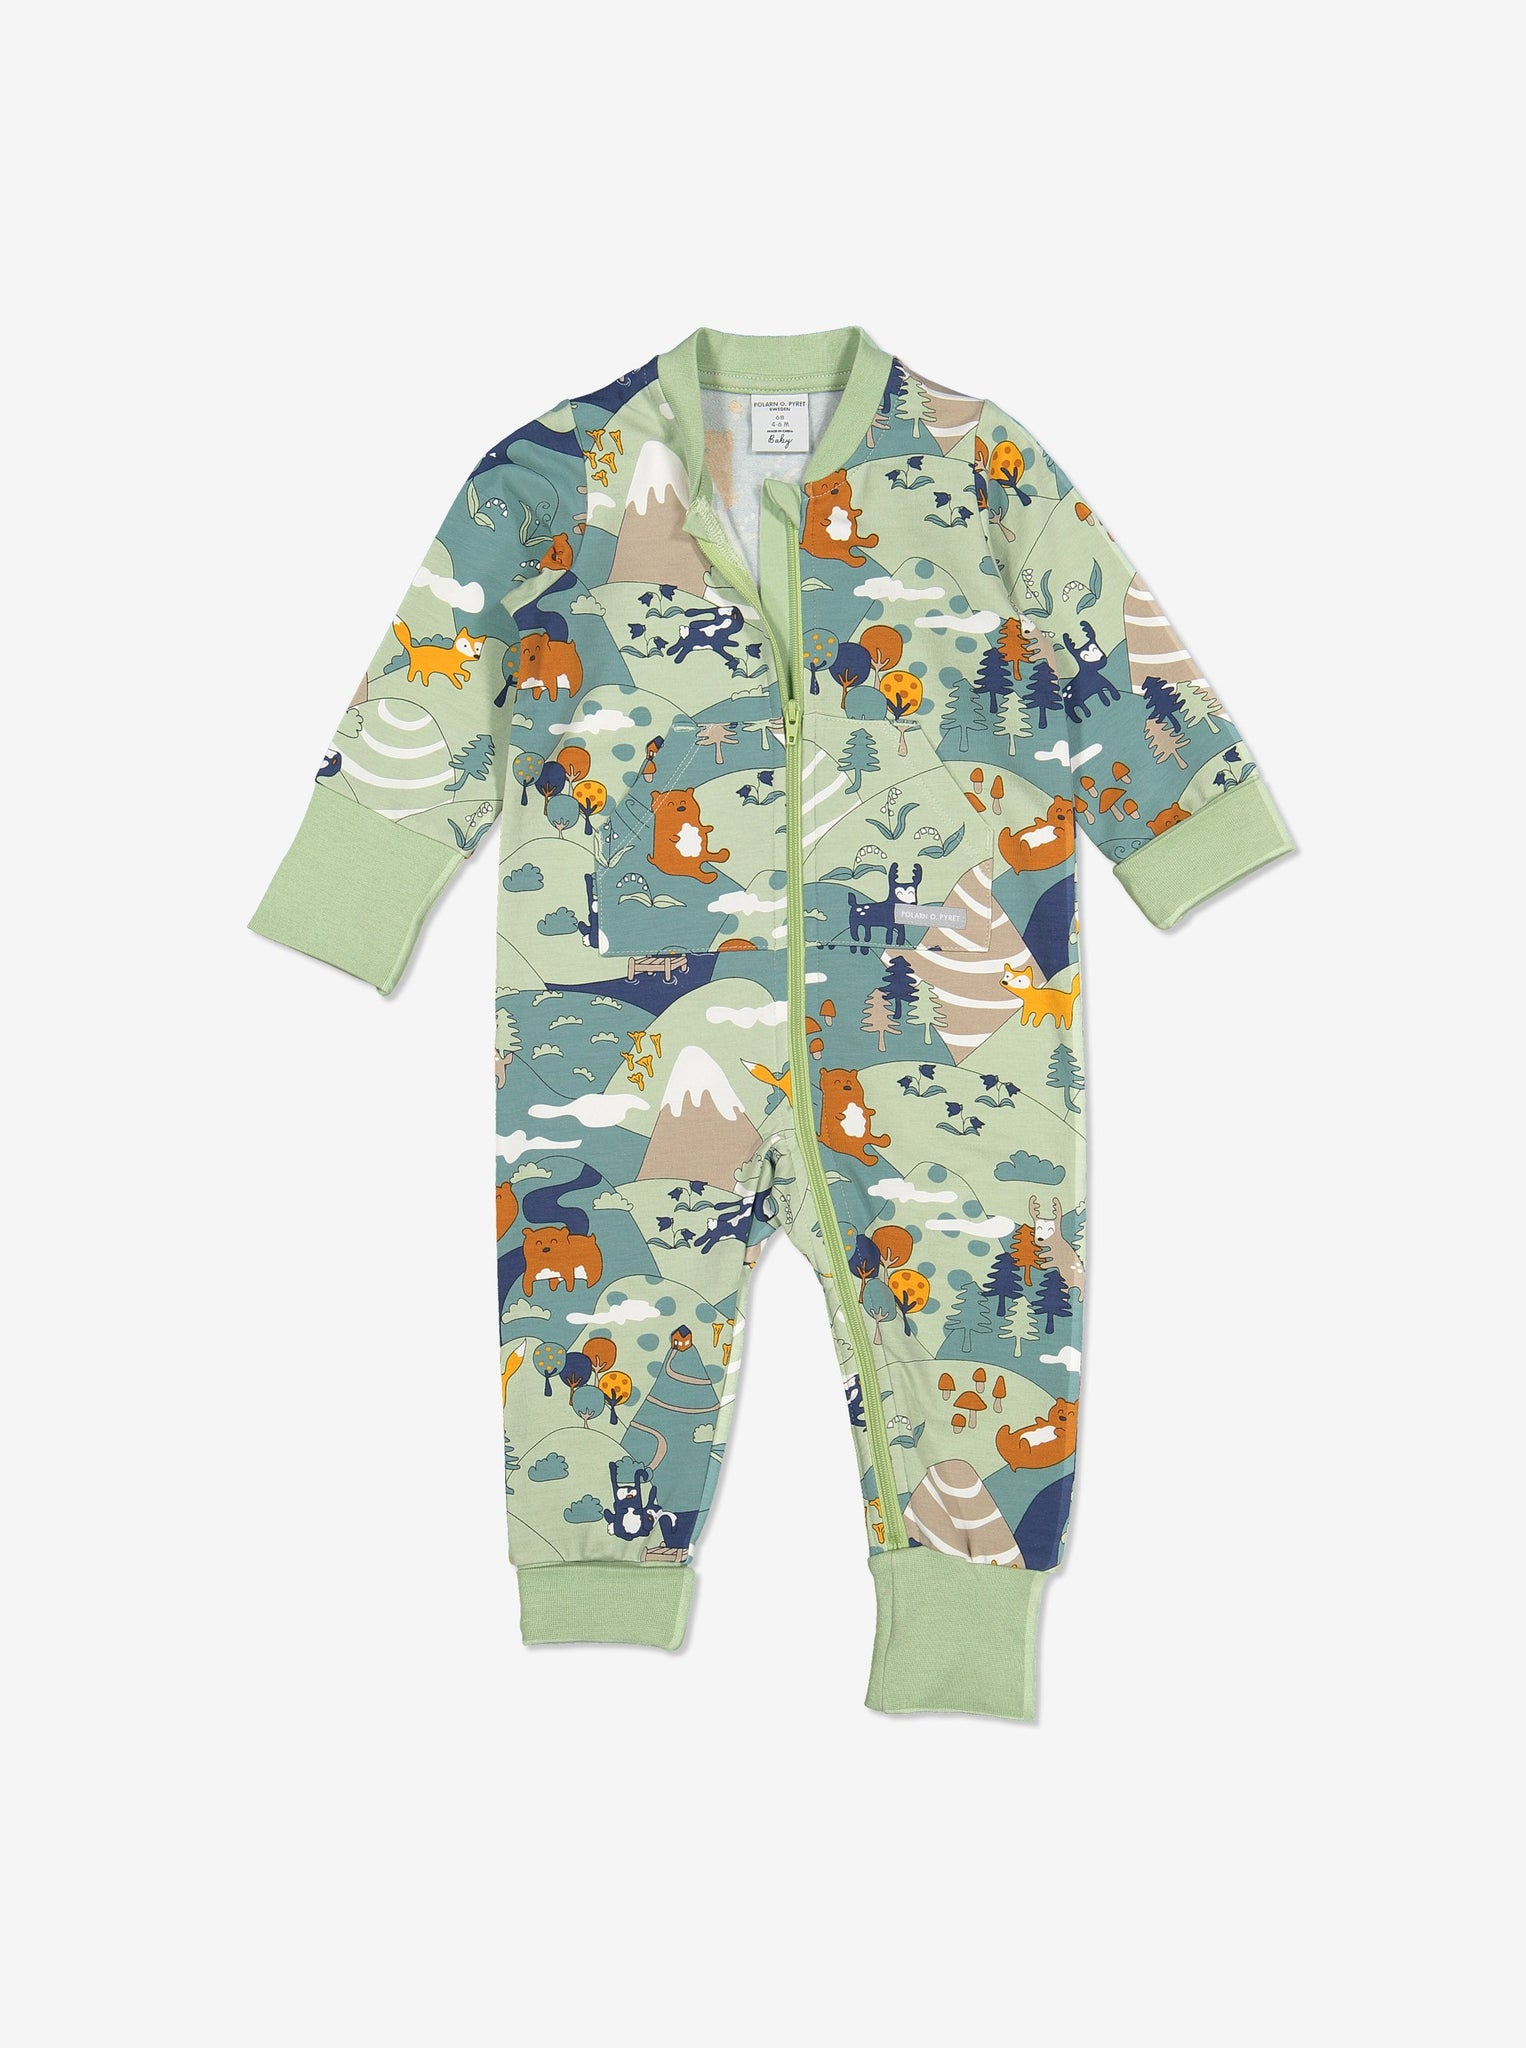 Nordic Forest Baby Romper-Unisex-0-1y-Green